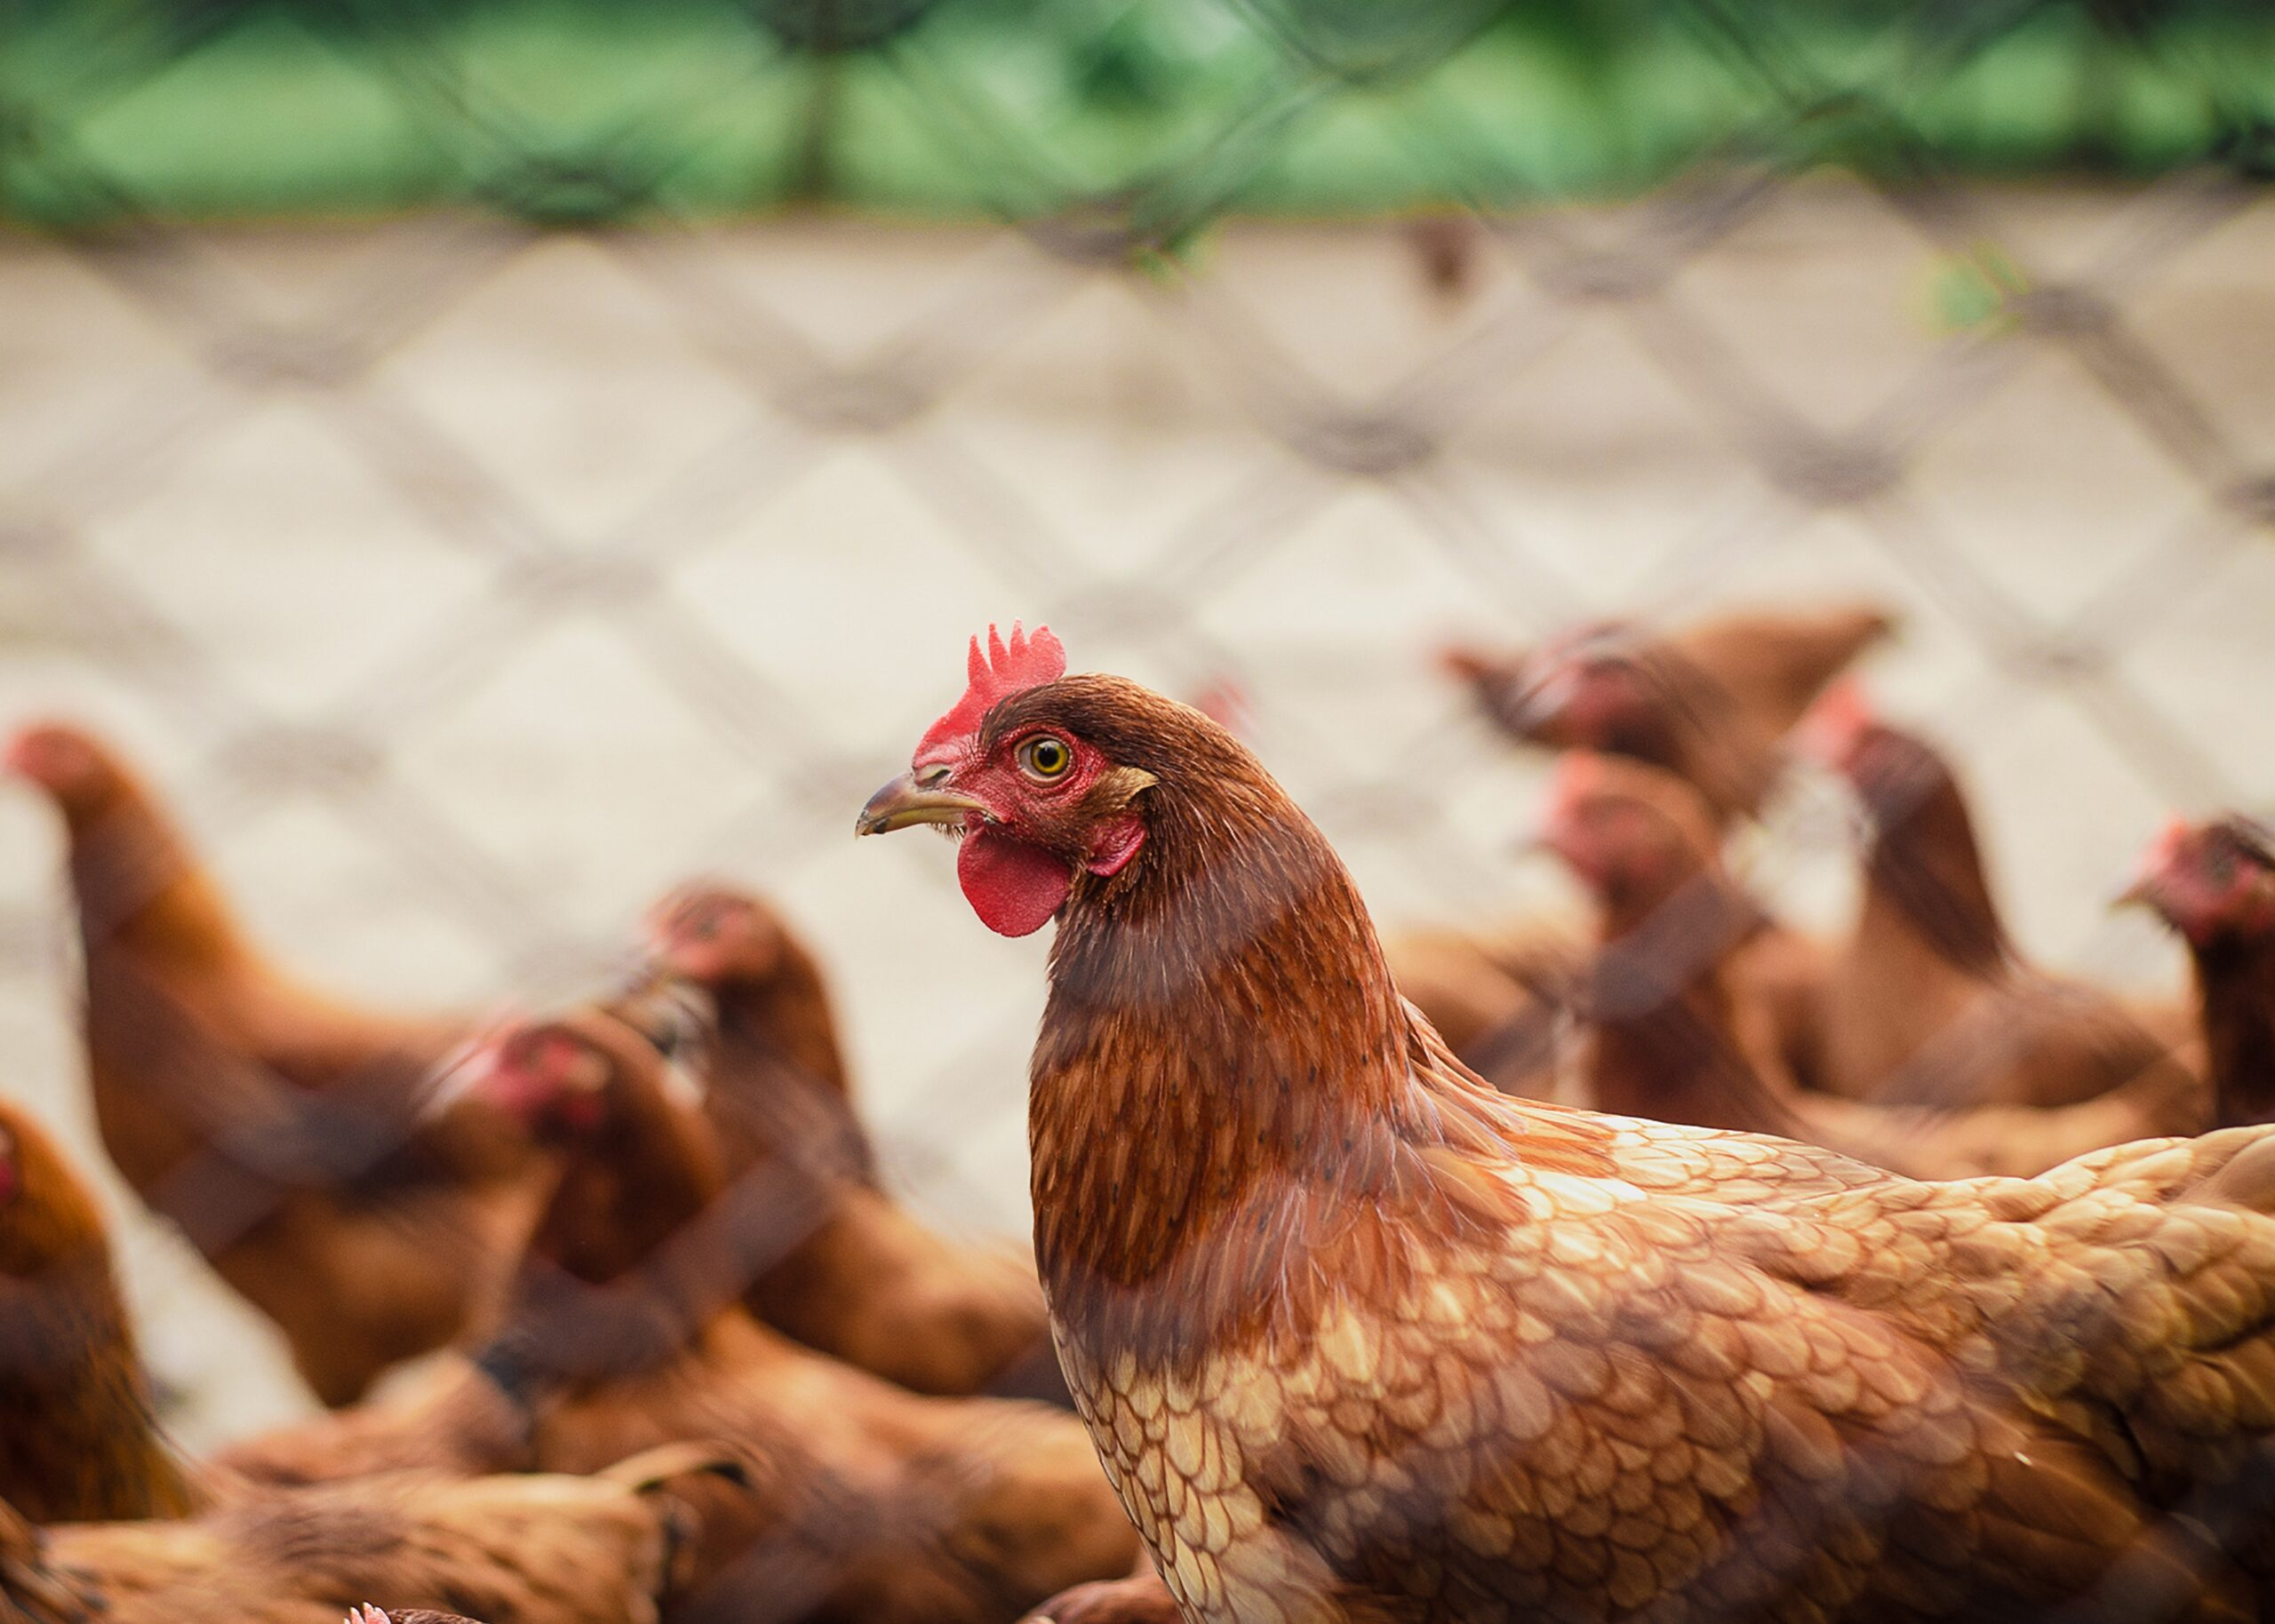 HOW TO MAKE PROFIT IN POULTRY